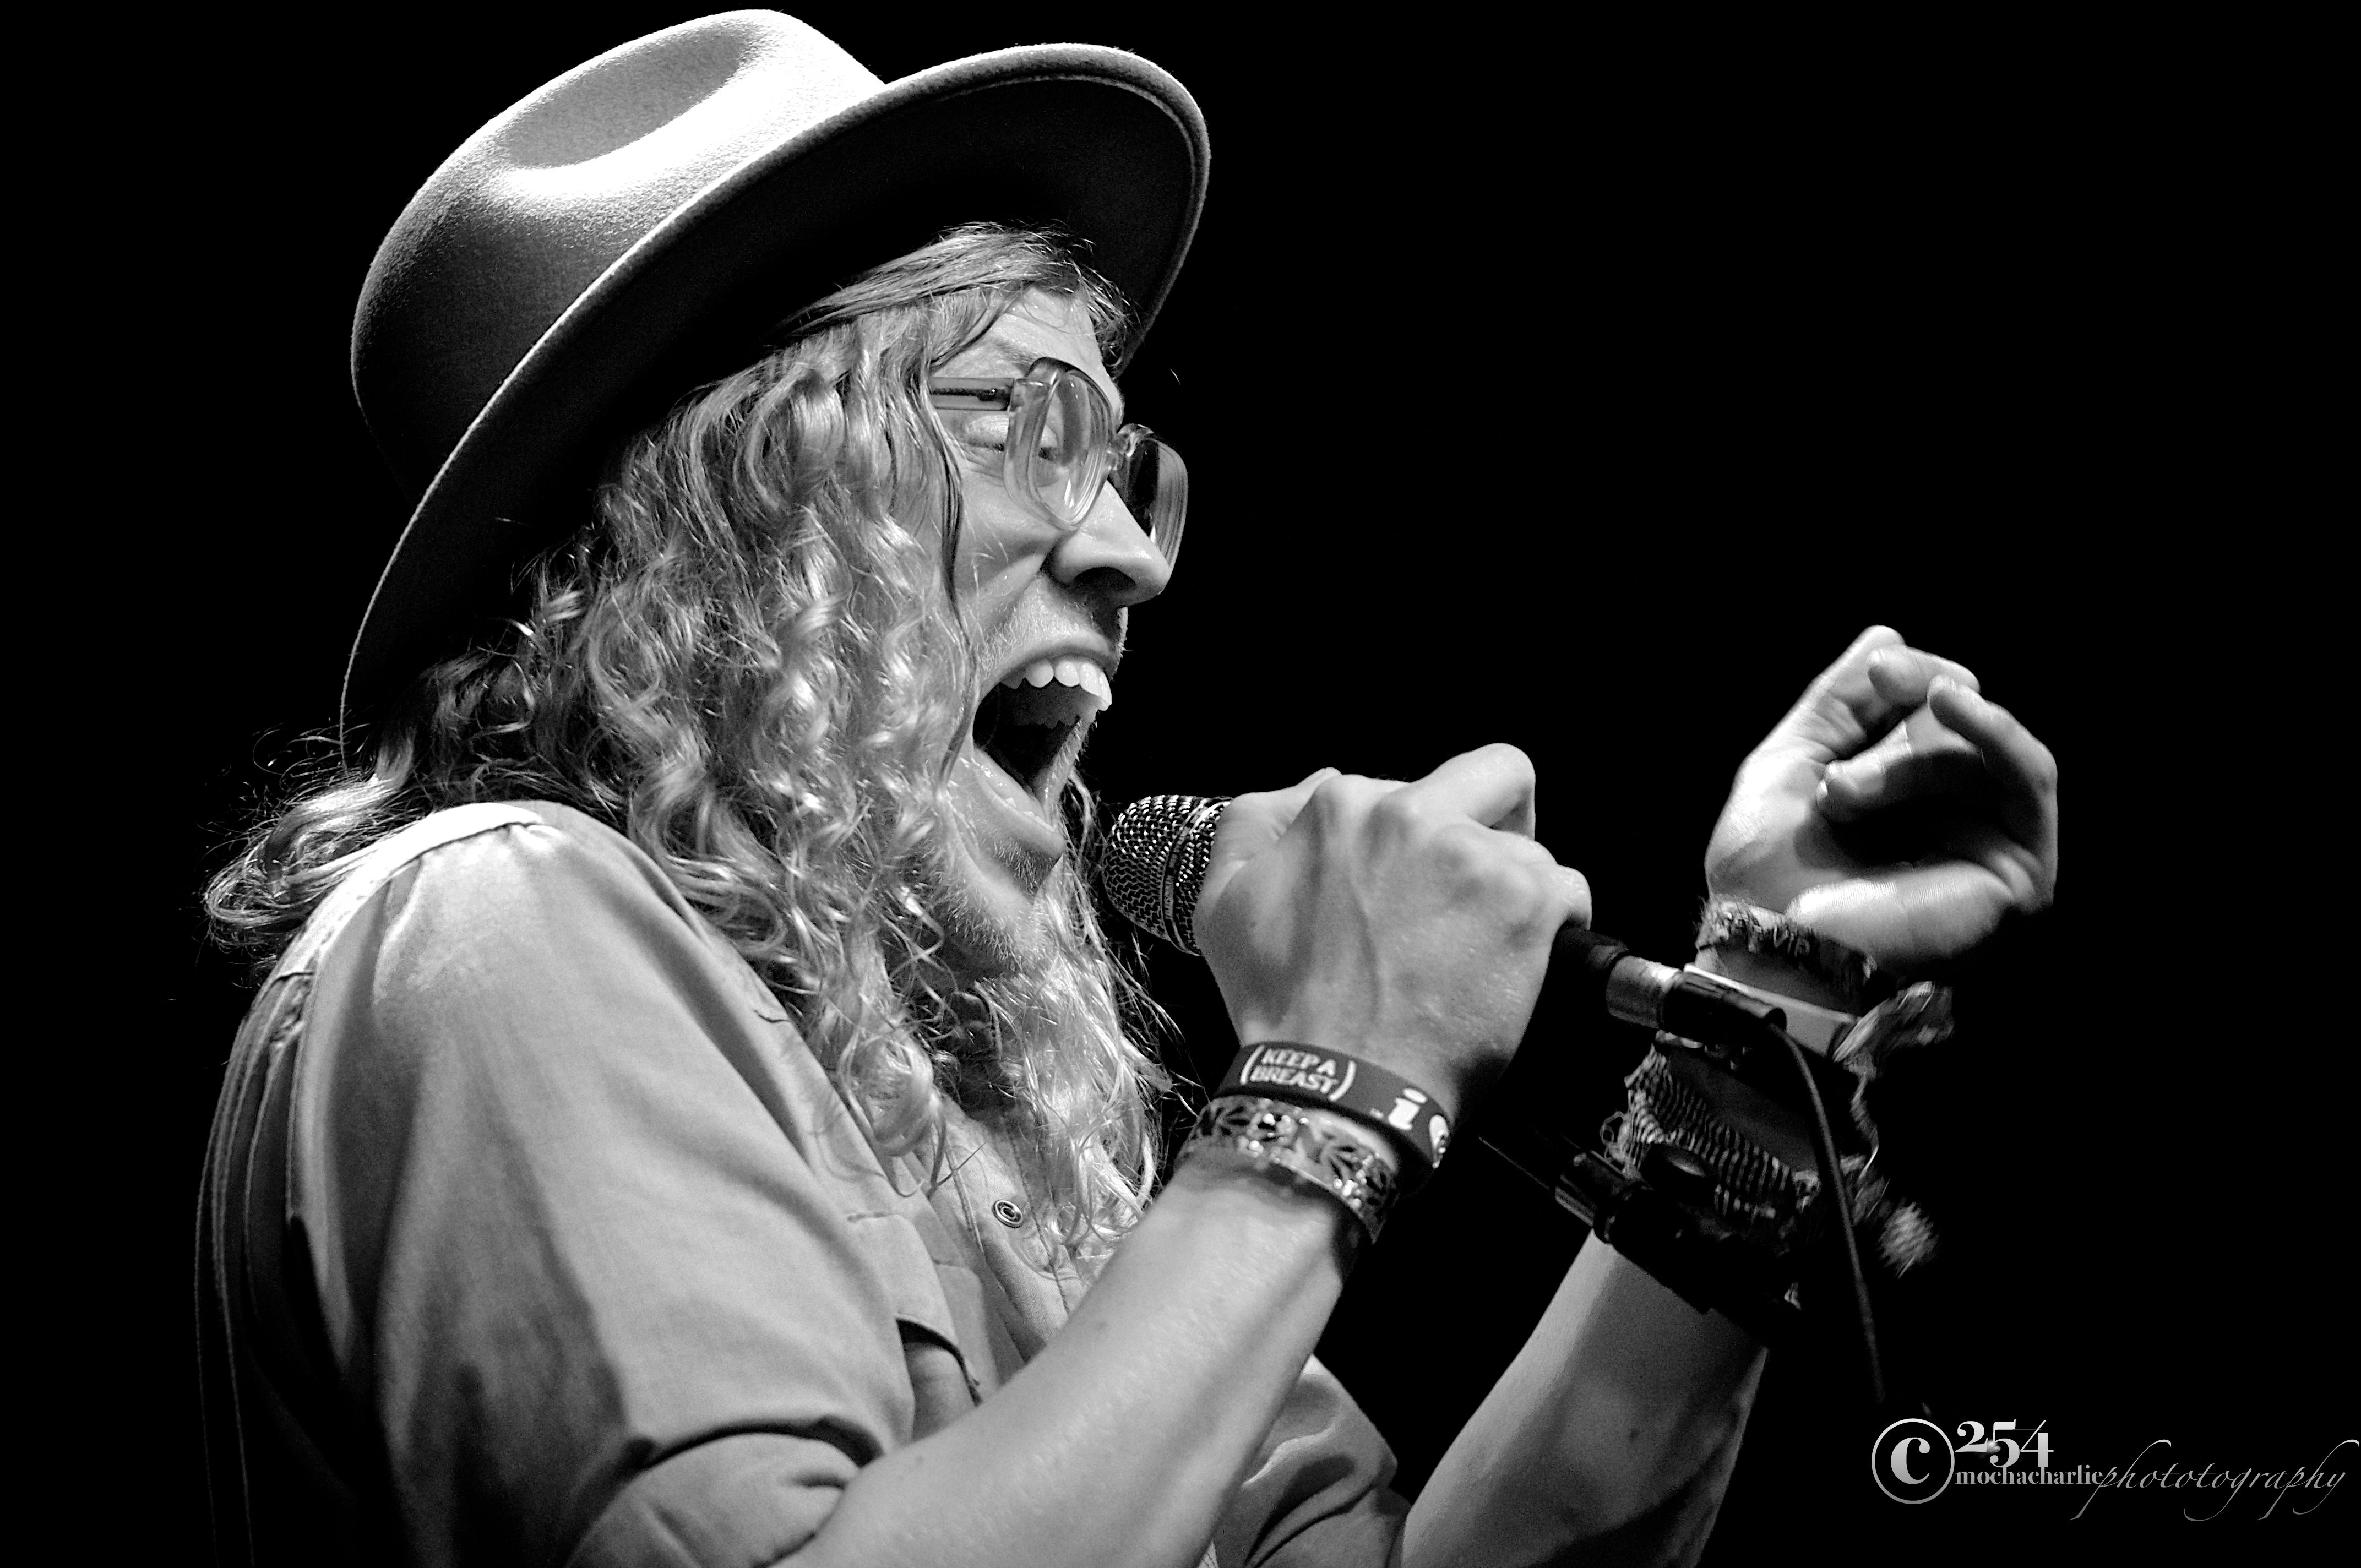 Capitol Hill Block Party 2012: Allen Stone